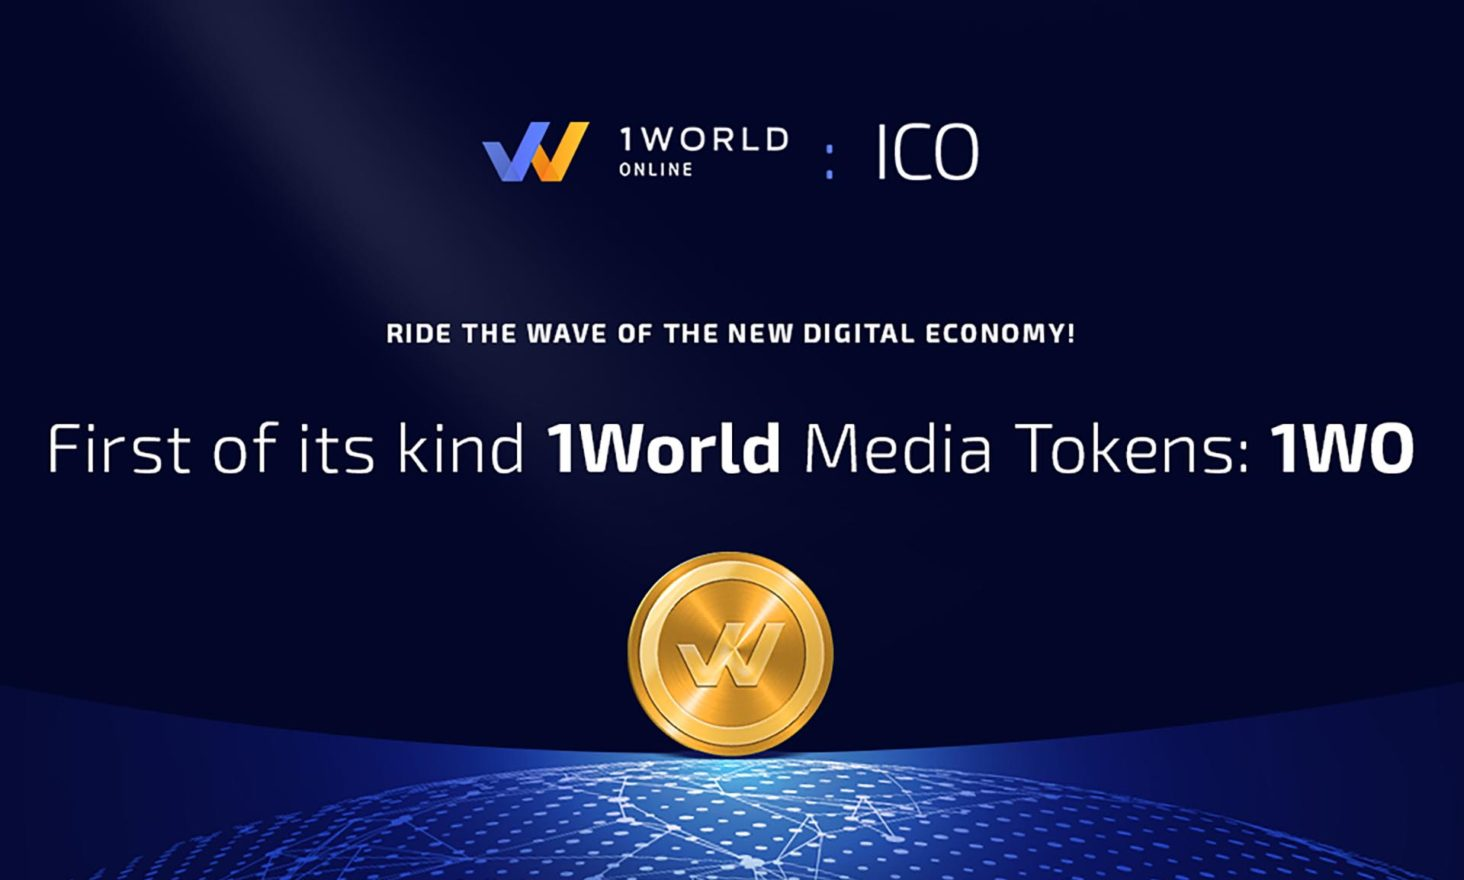 Engagement Engine 1World Online Announces ICO for Improved User Experience Model